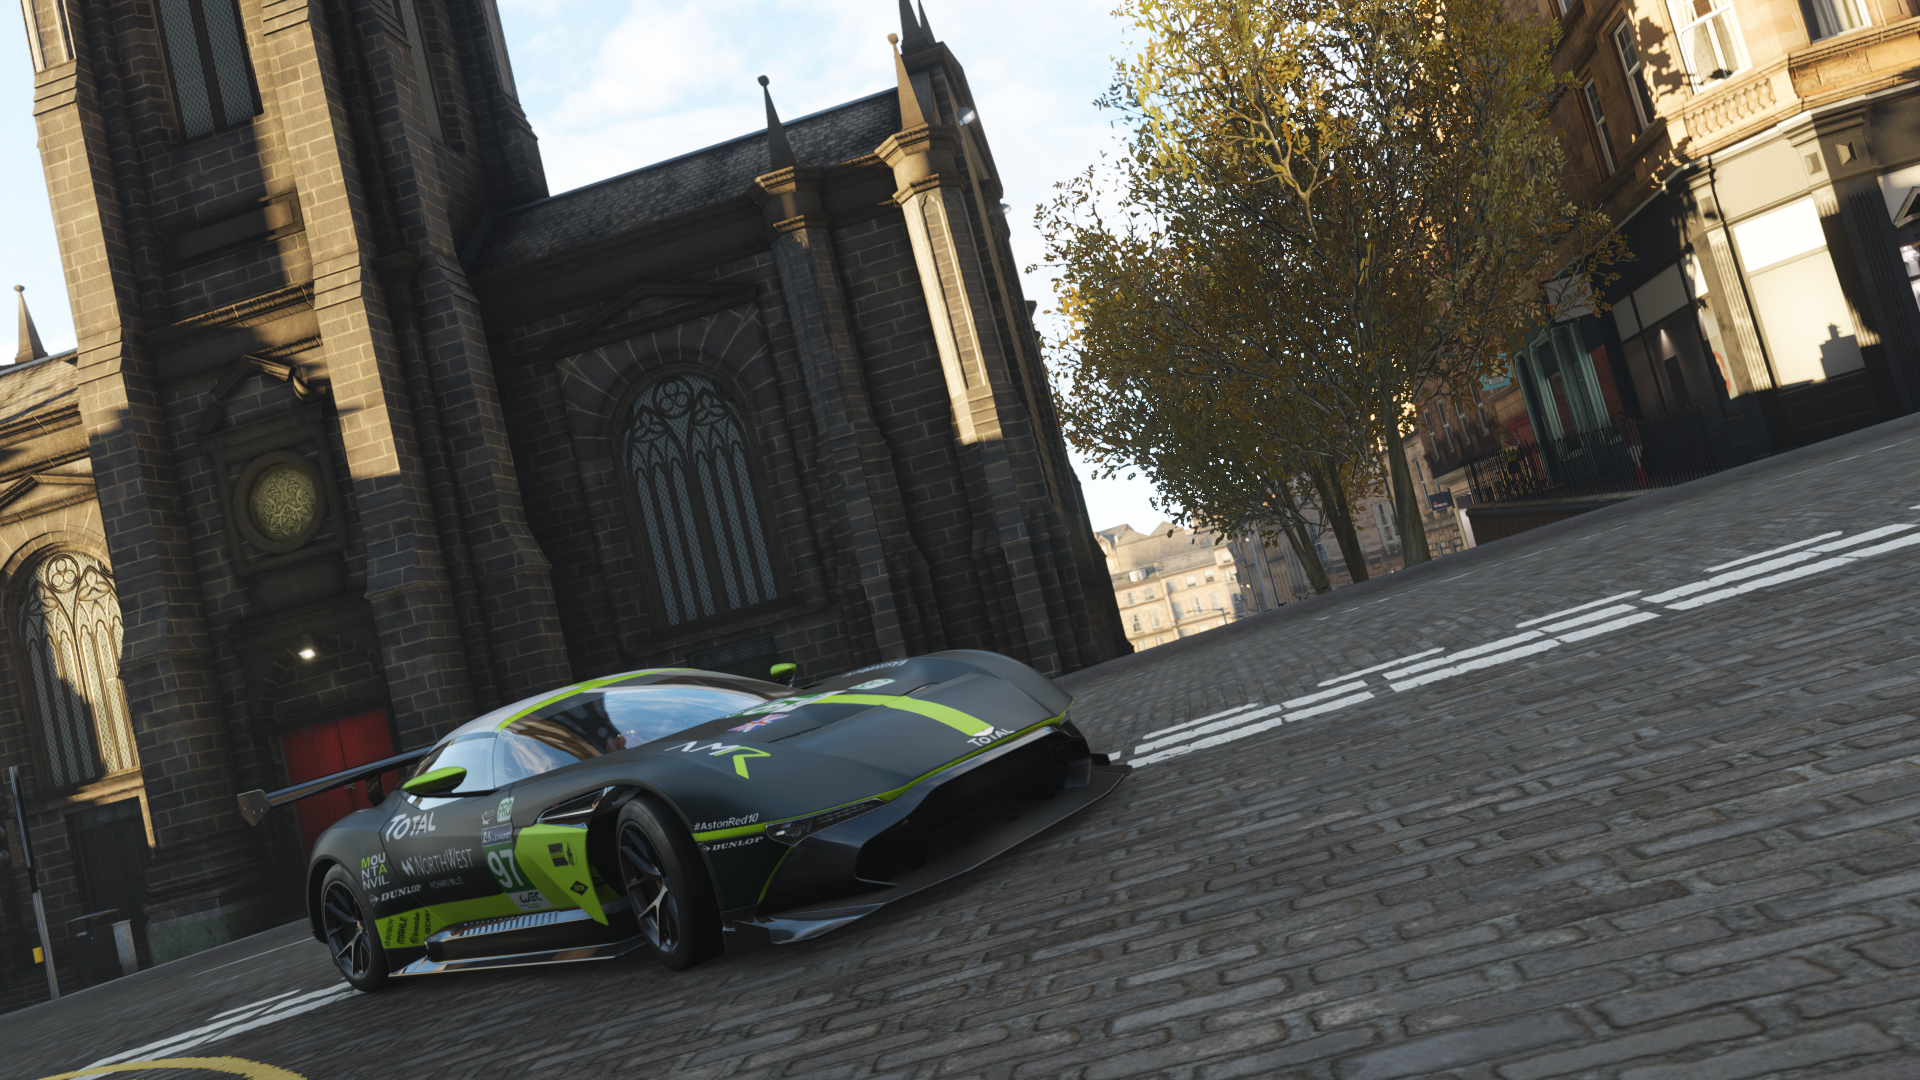 Forza Horizon 4 Livery Contest Liverycomp8 Always Note New Rules And Prizes Page 2 Community Events Forza Motorsport Forums